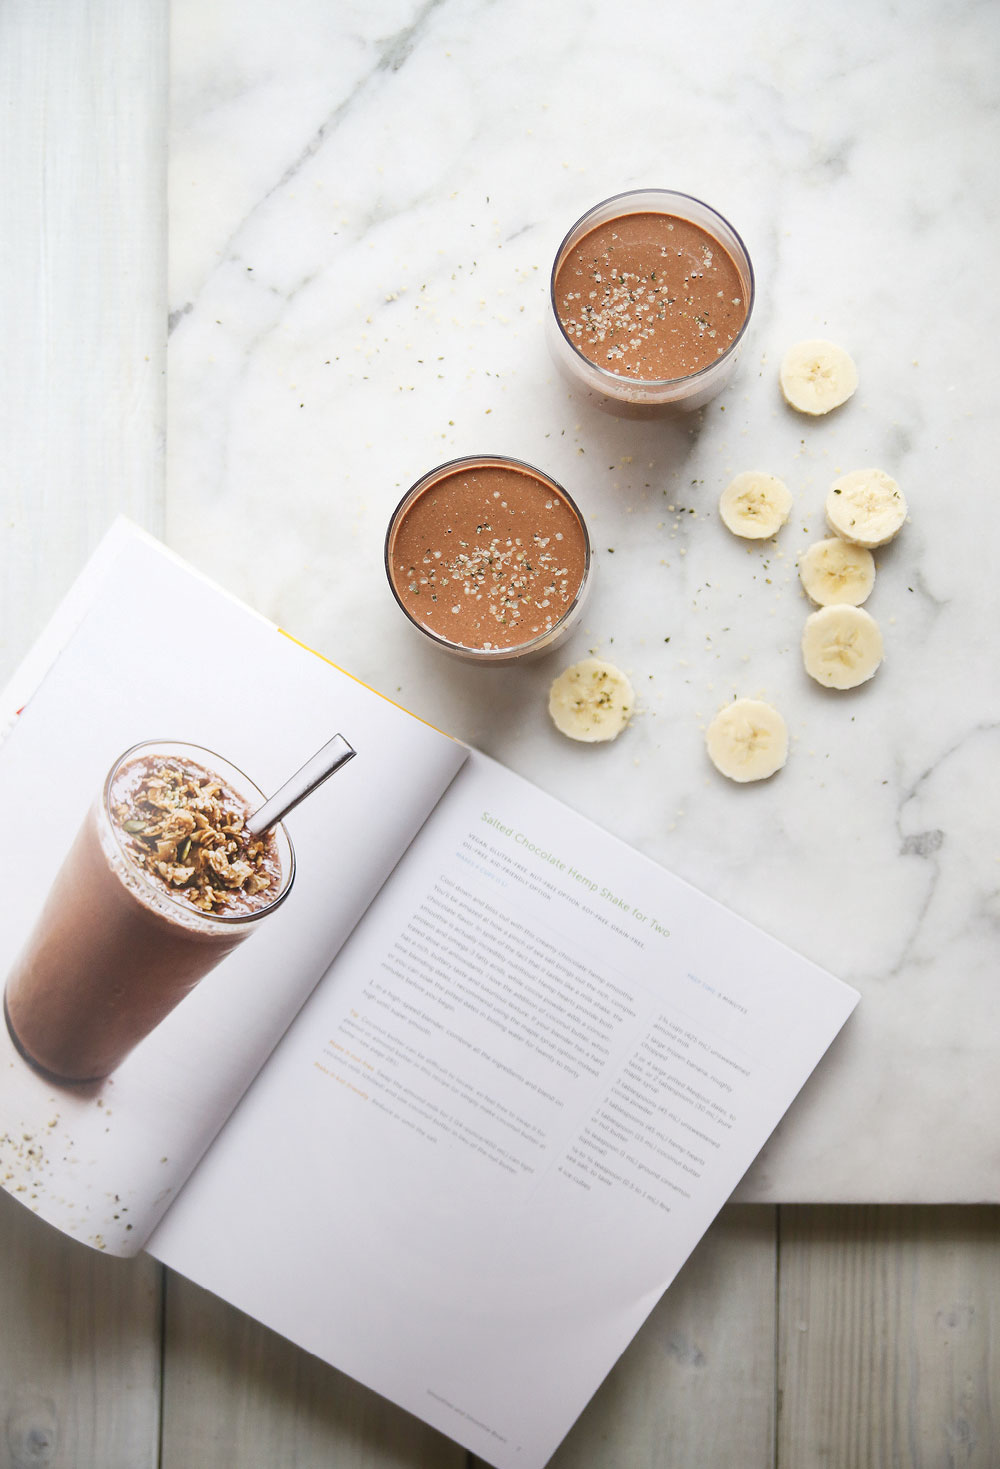 salted-chocolate-hemp-shake-smoothie-oh-she-glows-pure-ella-leche6